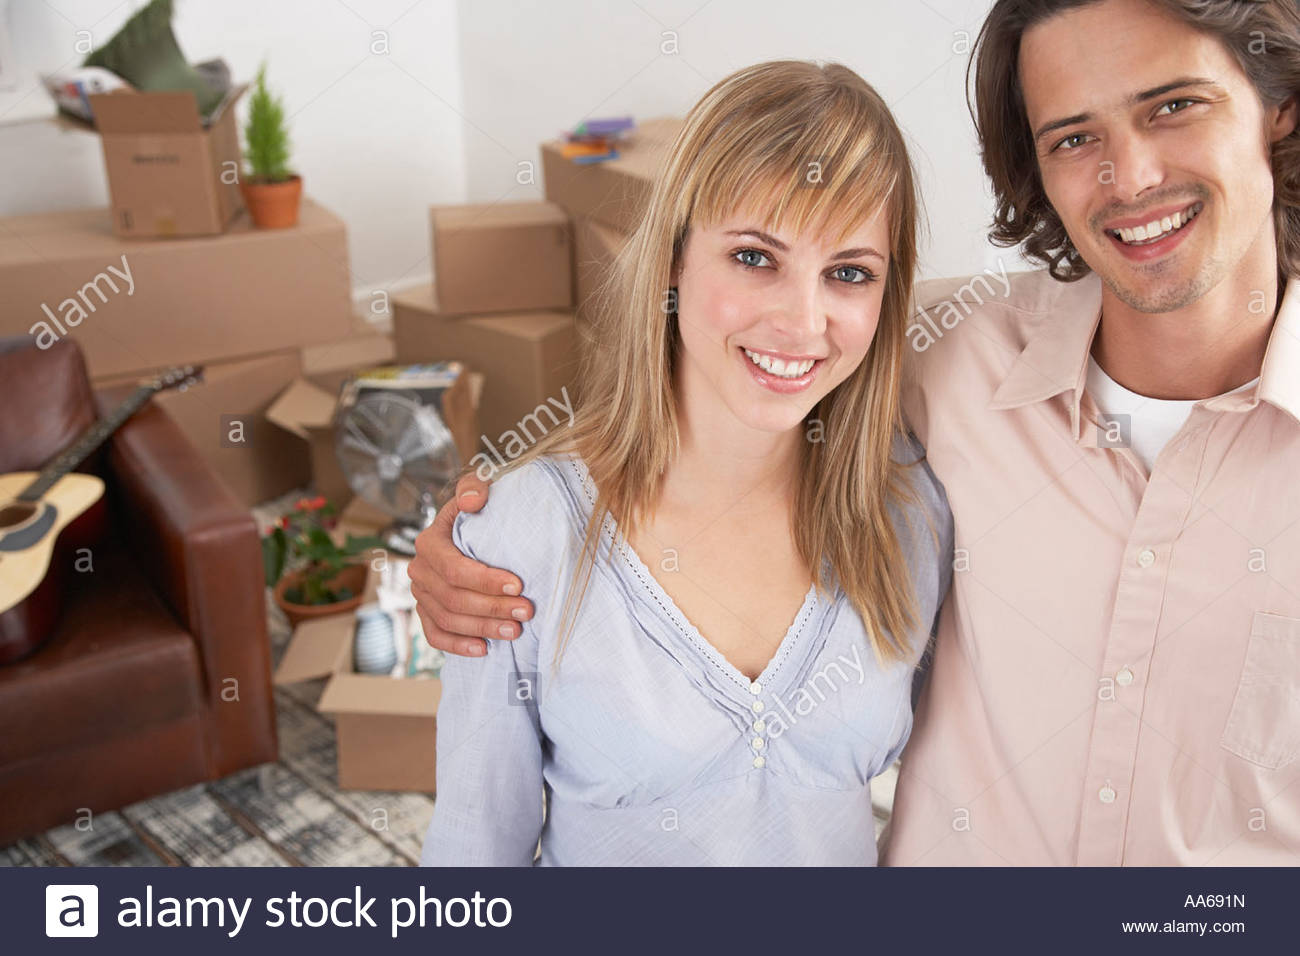 Man and woman in home with cardboard boxes and guitar smiling - Stock Image